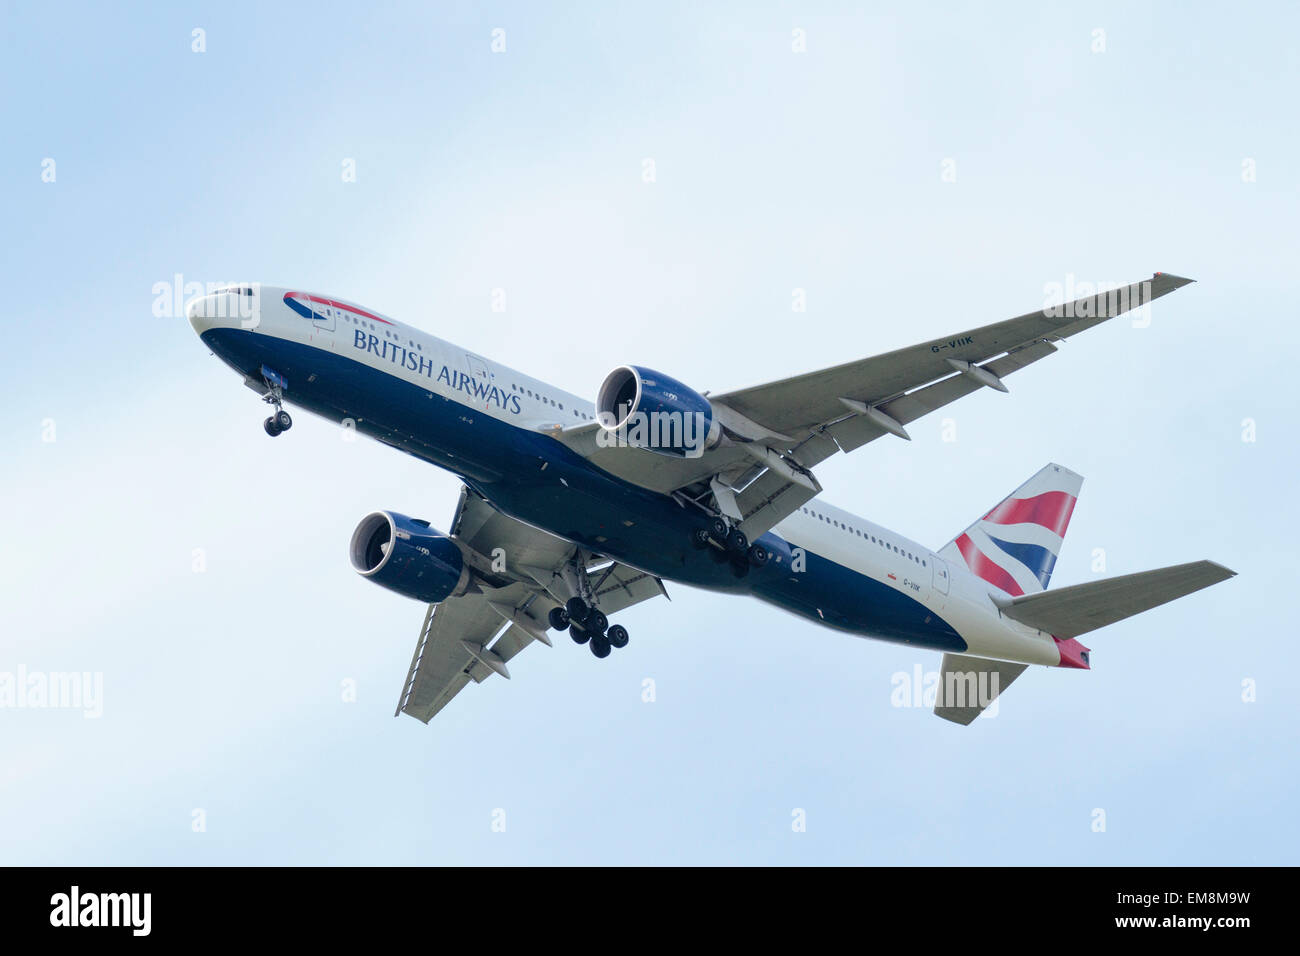 Boeing 777 (G-VIIK)— British Airways - Stock Image